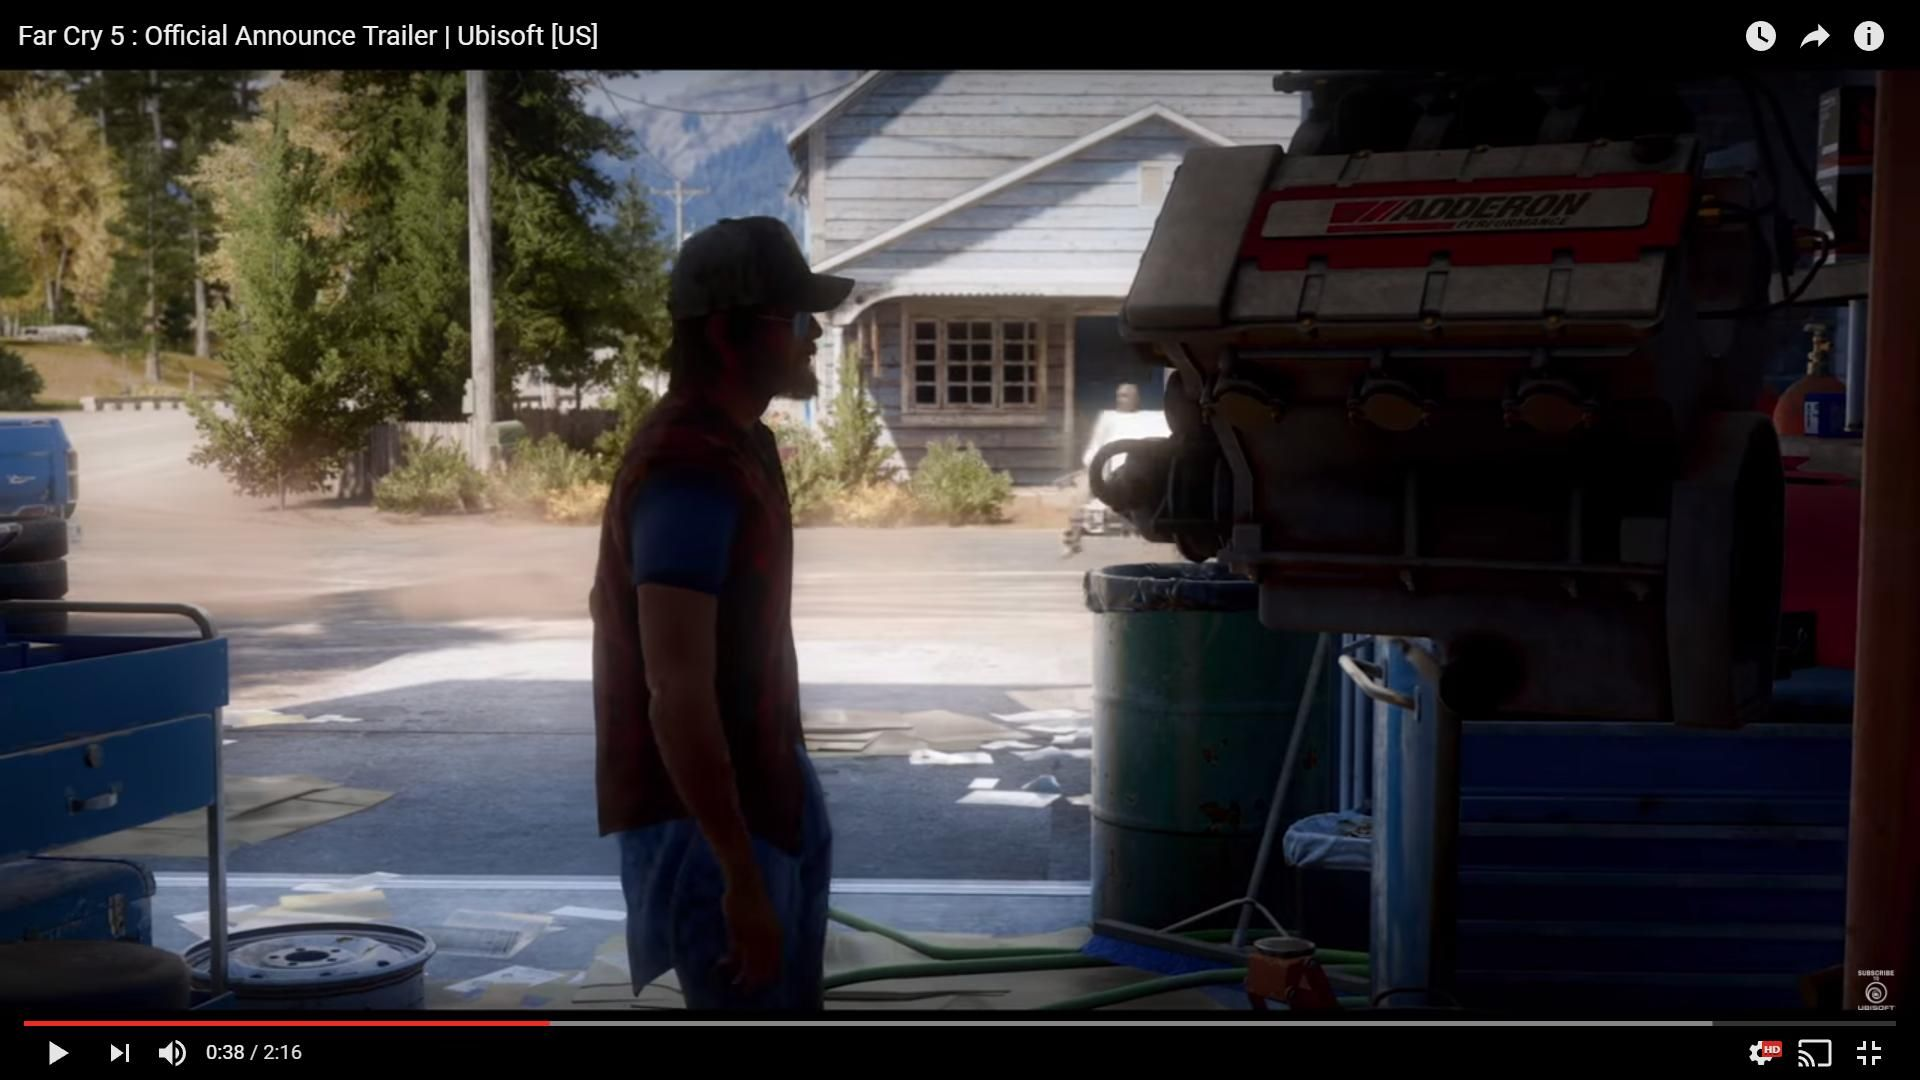 Shout Out To Norman Reedus In Far Cry 5 News Of Video Game